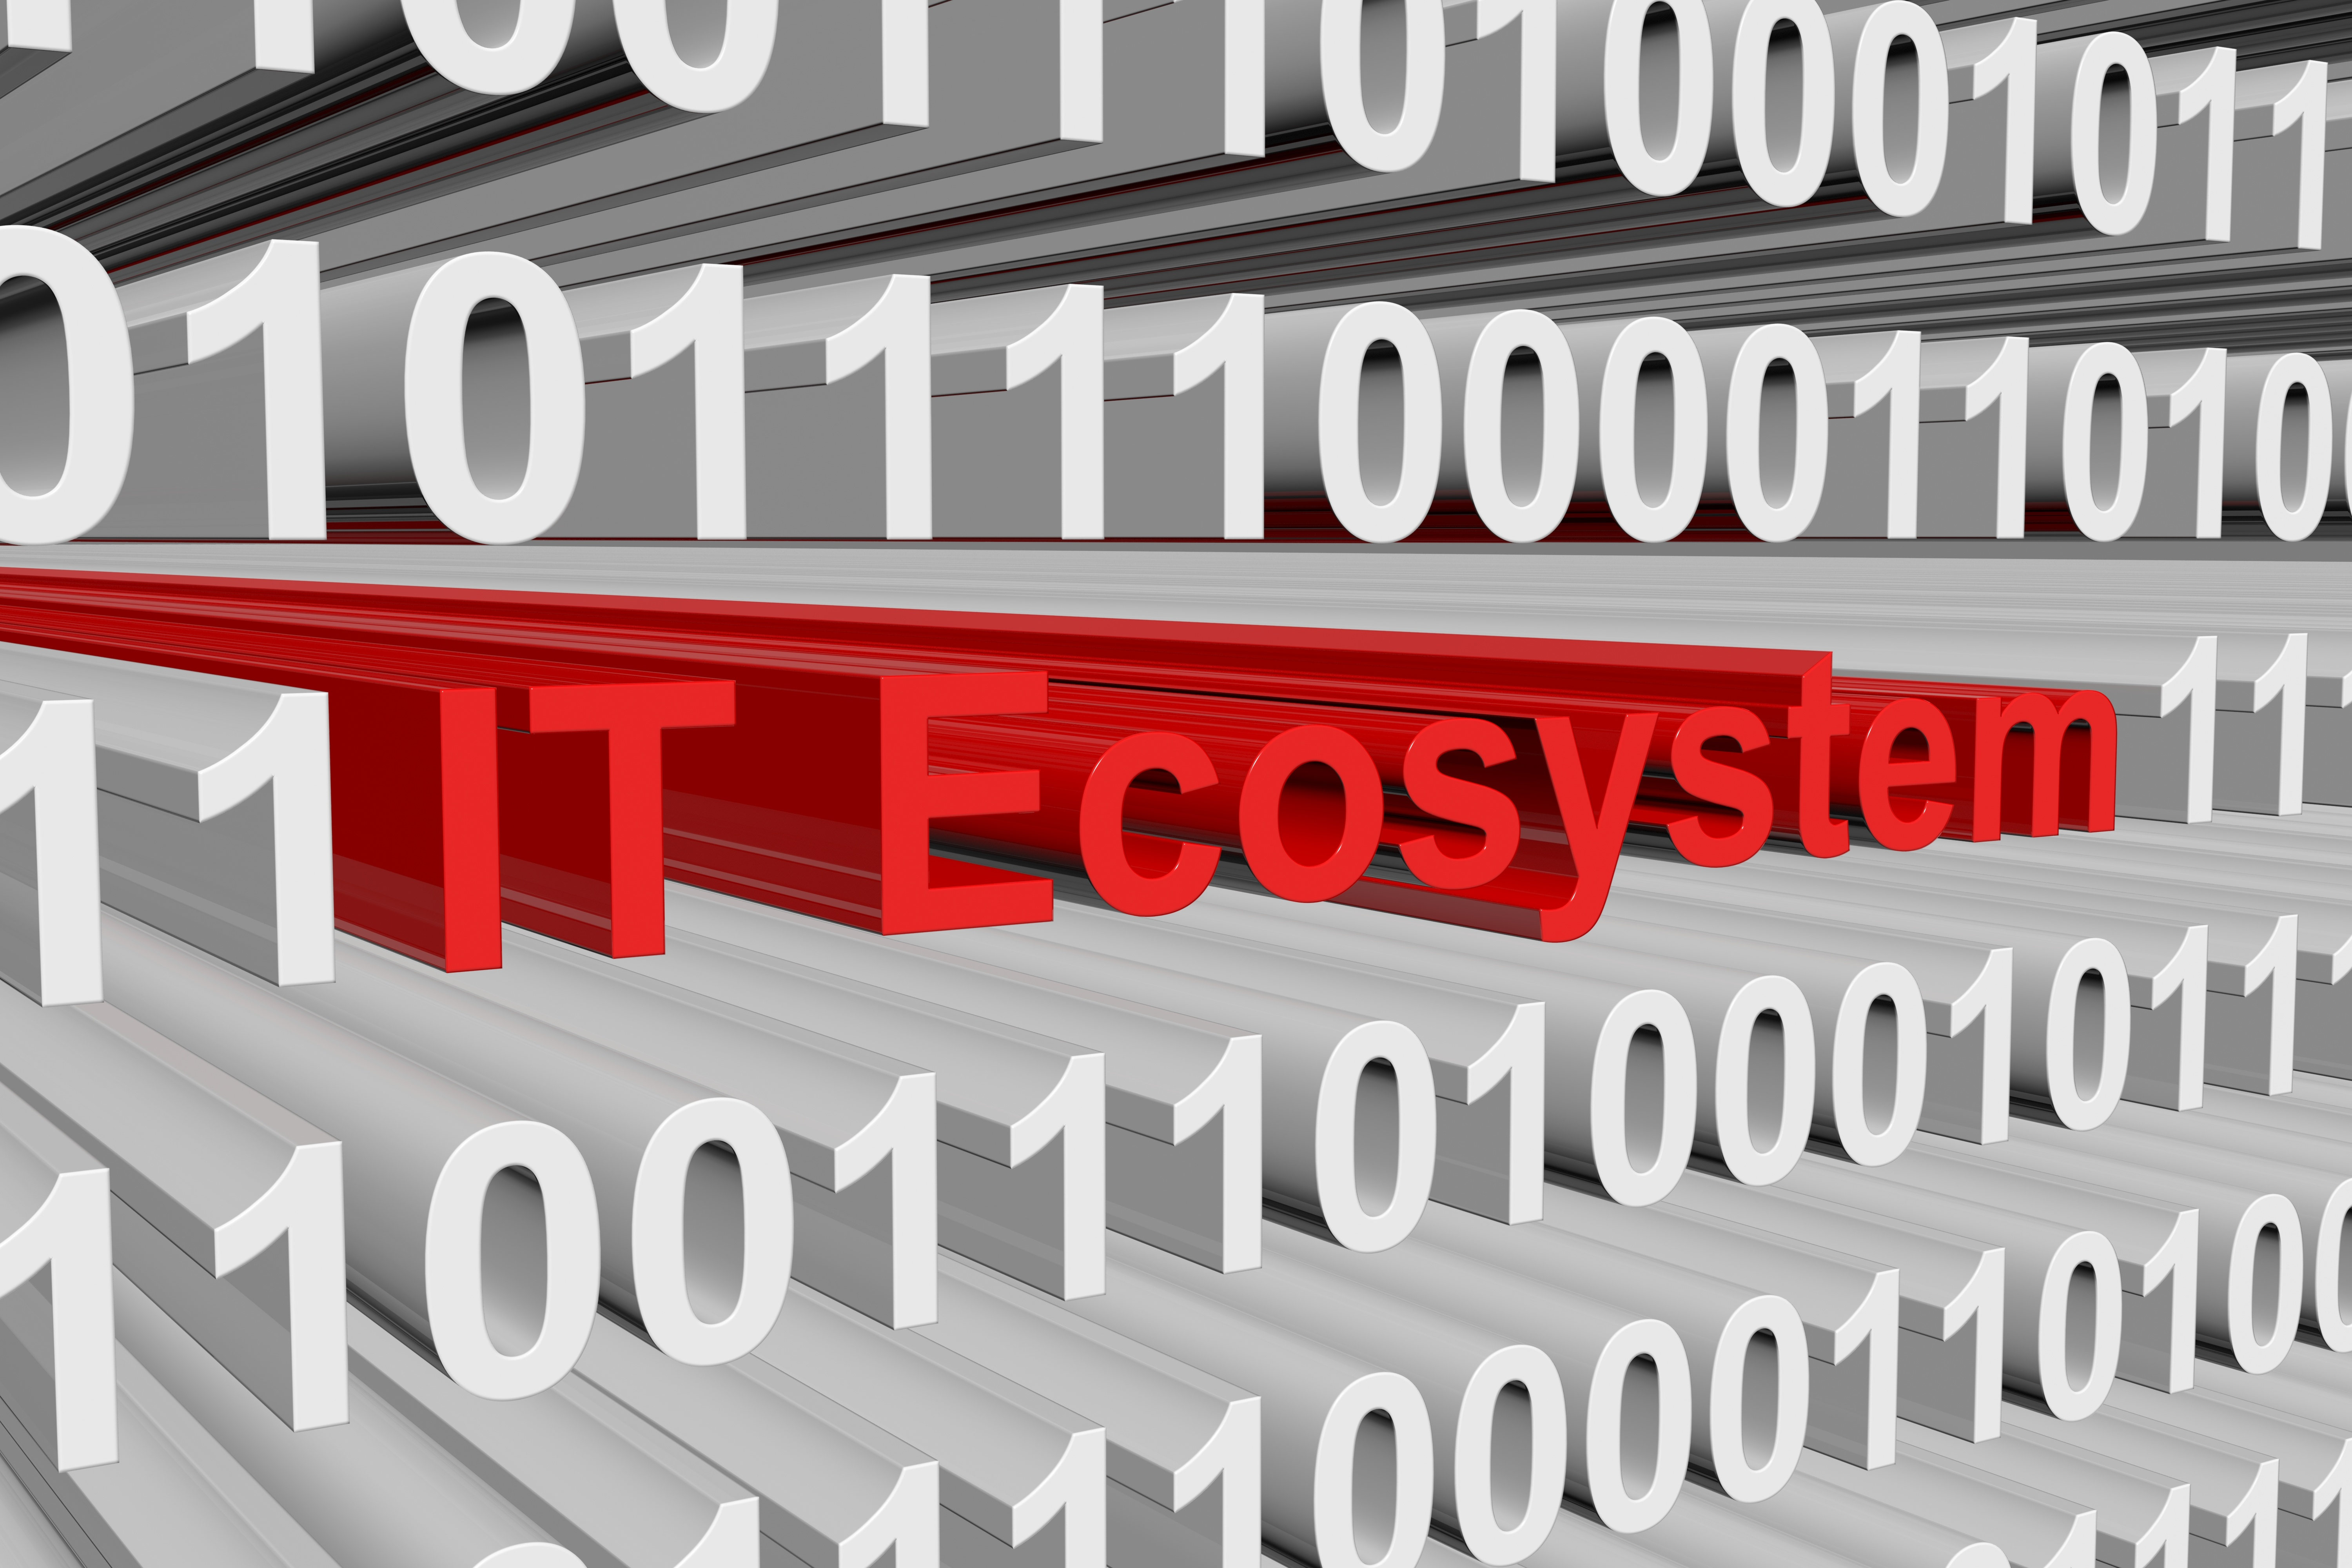 The IT Ecosystem is presented in the form of binary code